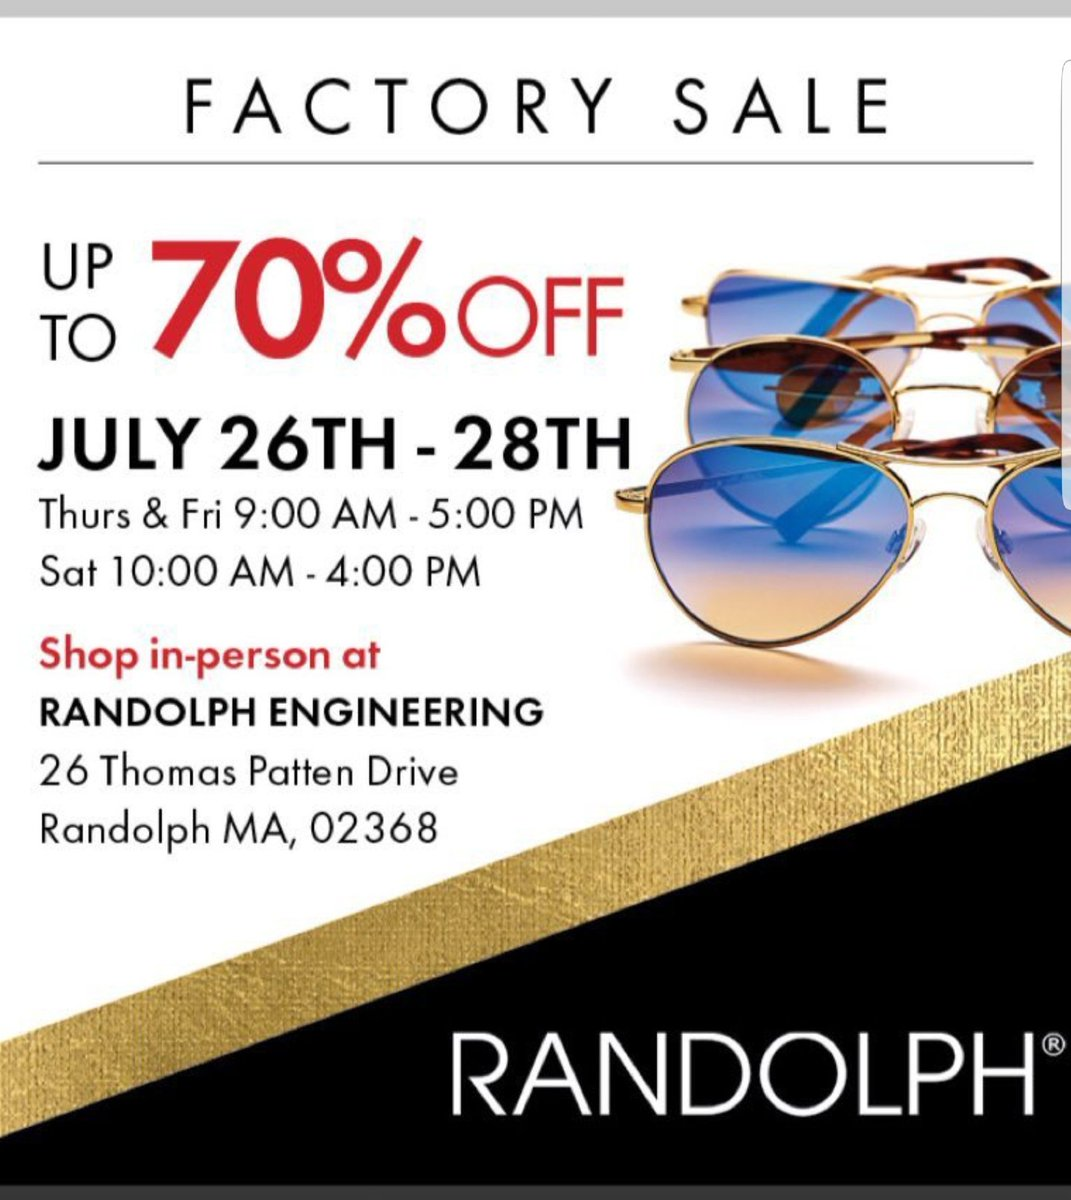 520f5b9ef6  RandolphUSA makes them in Massachusetts and gives a lifetime warranty.  Their factory sale is this weekend.....go check them out!…  https   t.co ffma2SbIoo